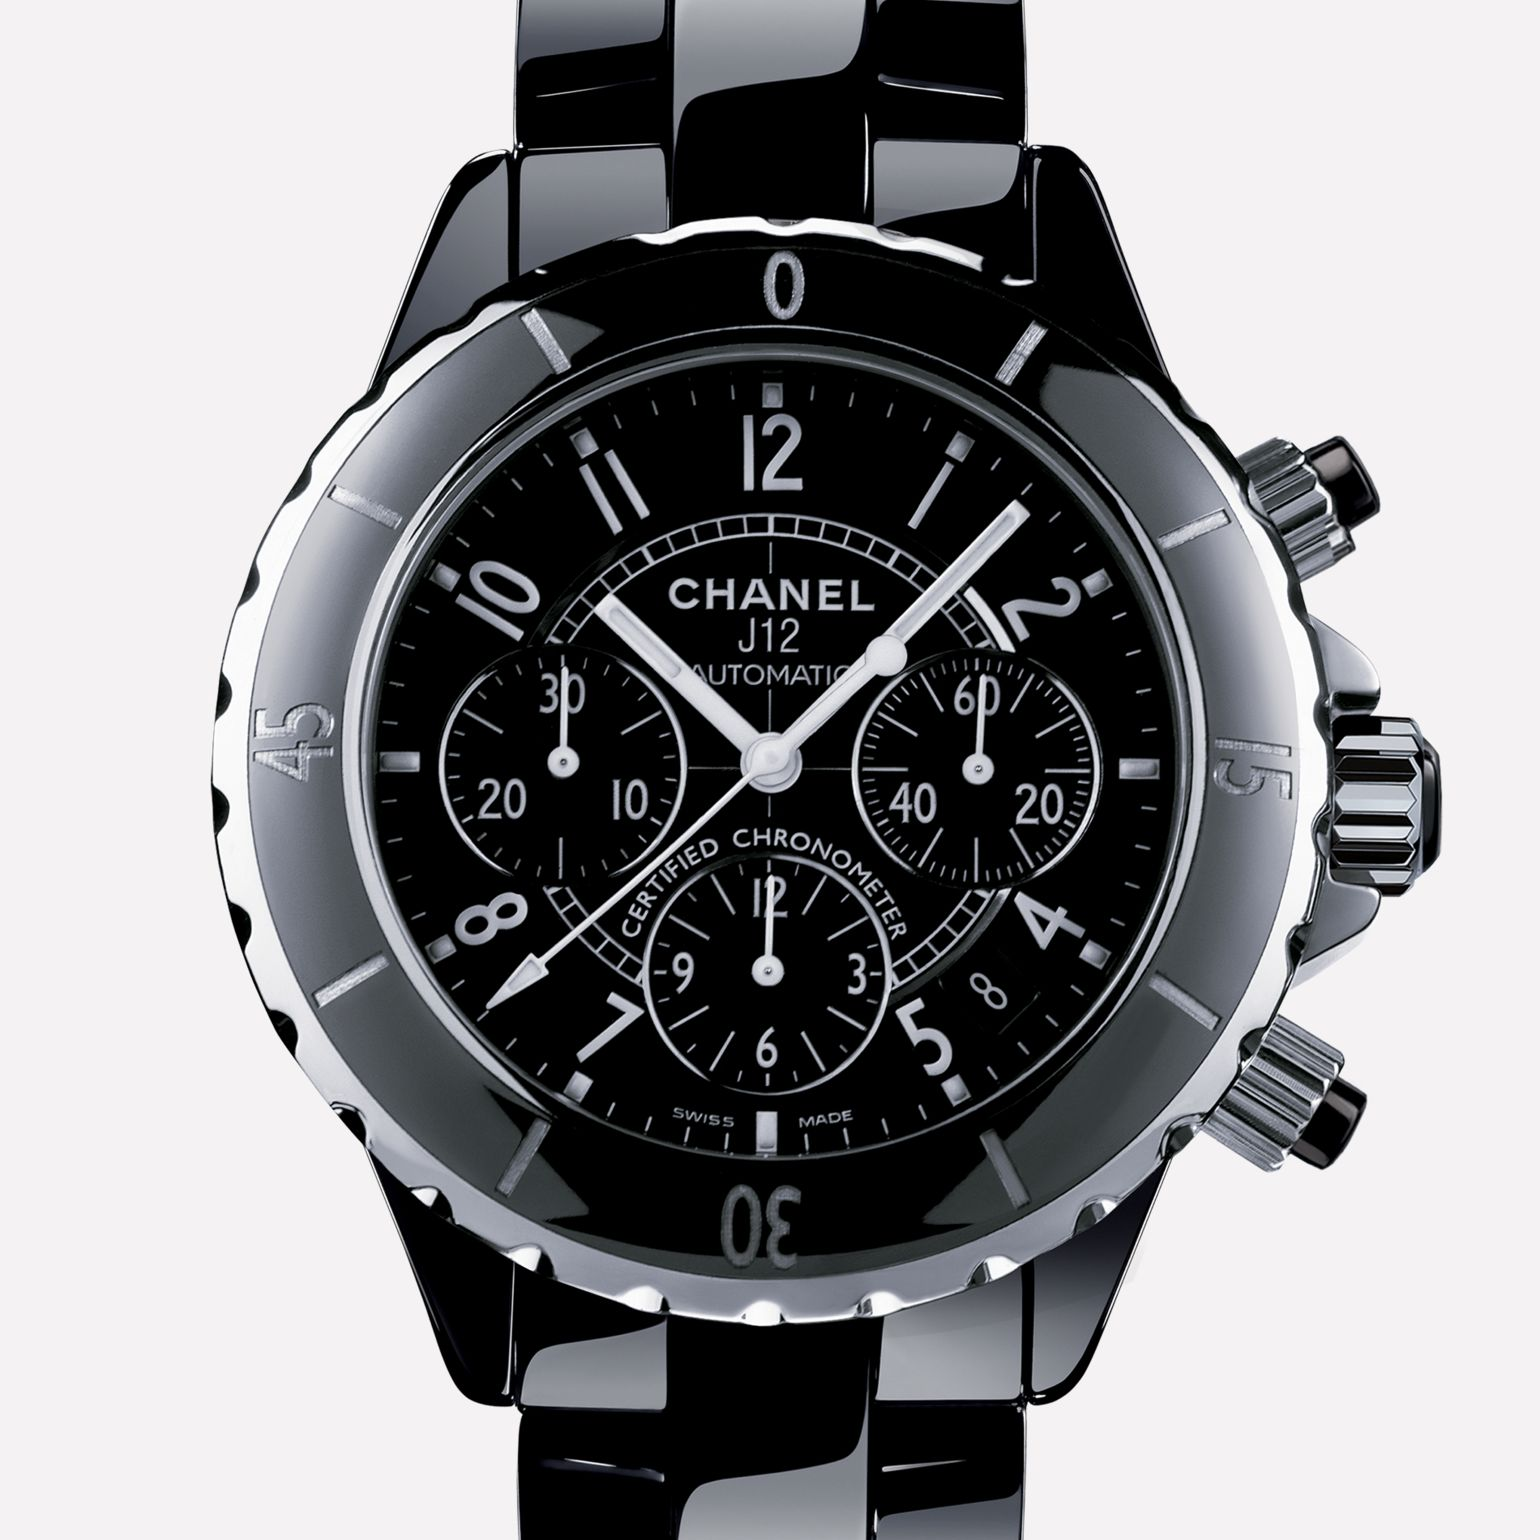 J12 CHRONOGRAPH Black ceramic and steel